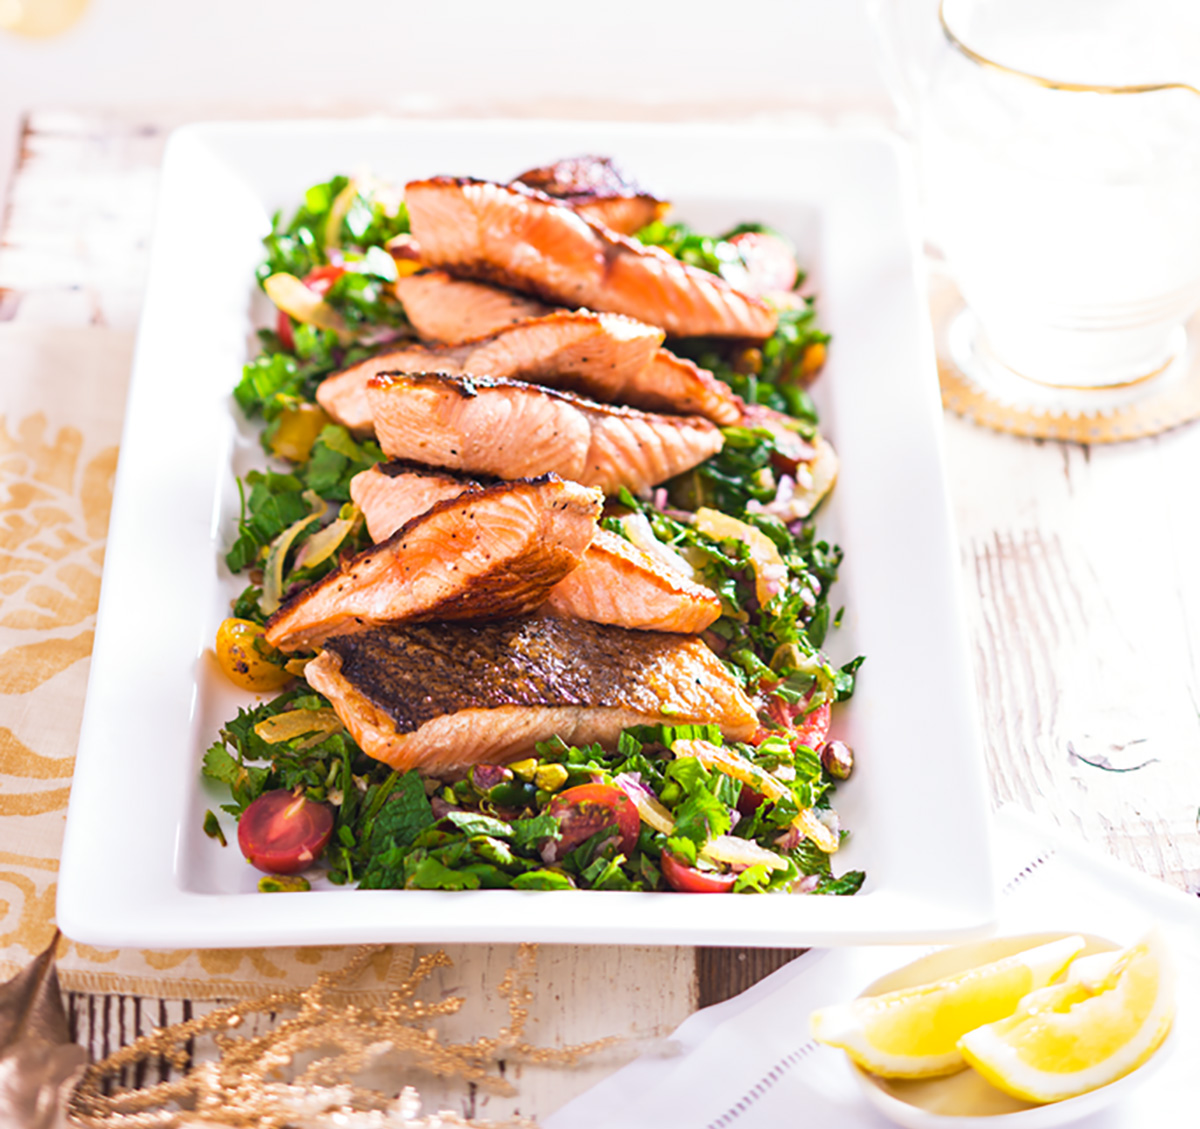 Catering for a crowd? Try our Barbecued salmon with Moroccan salad